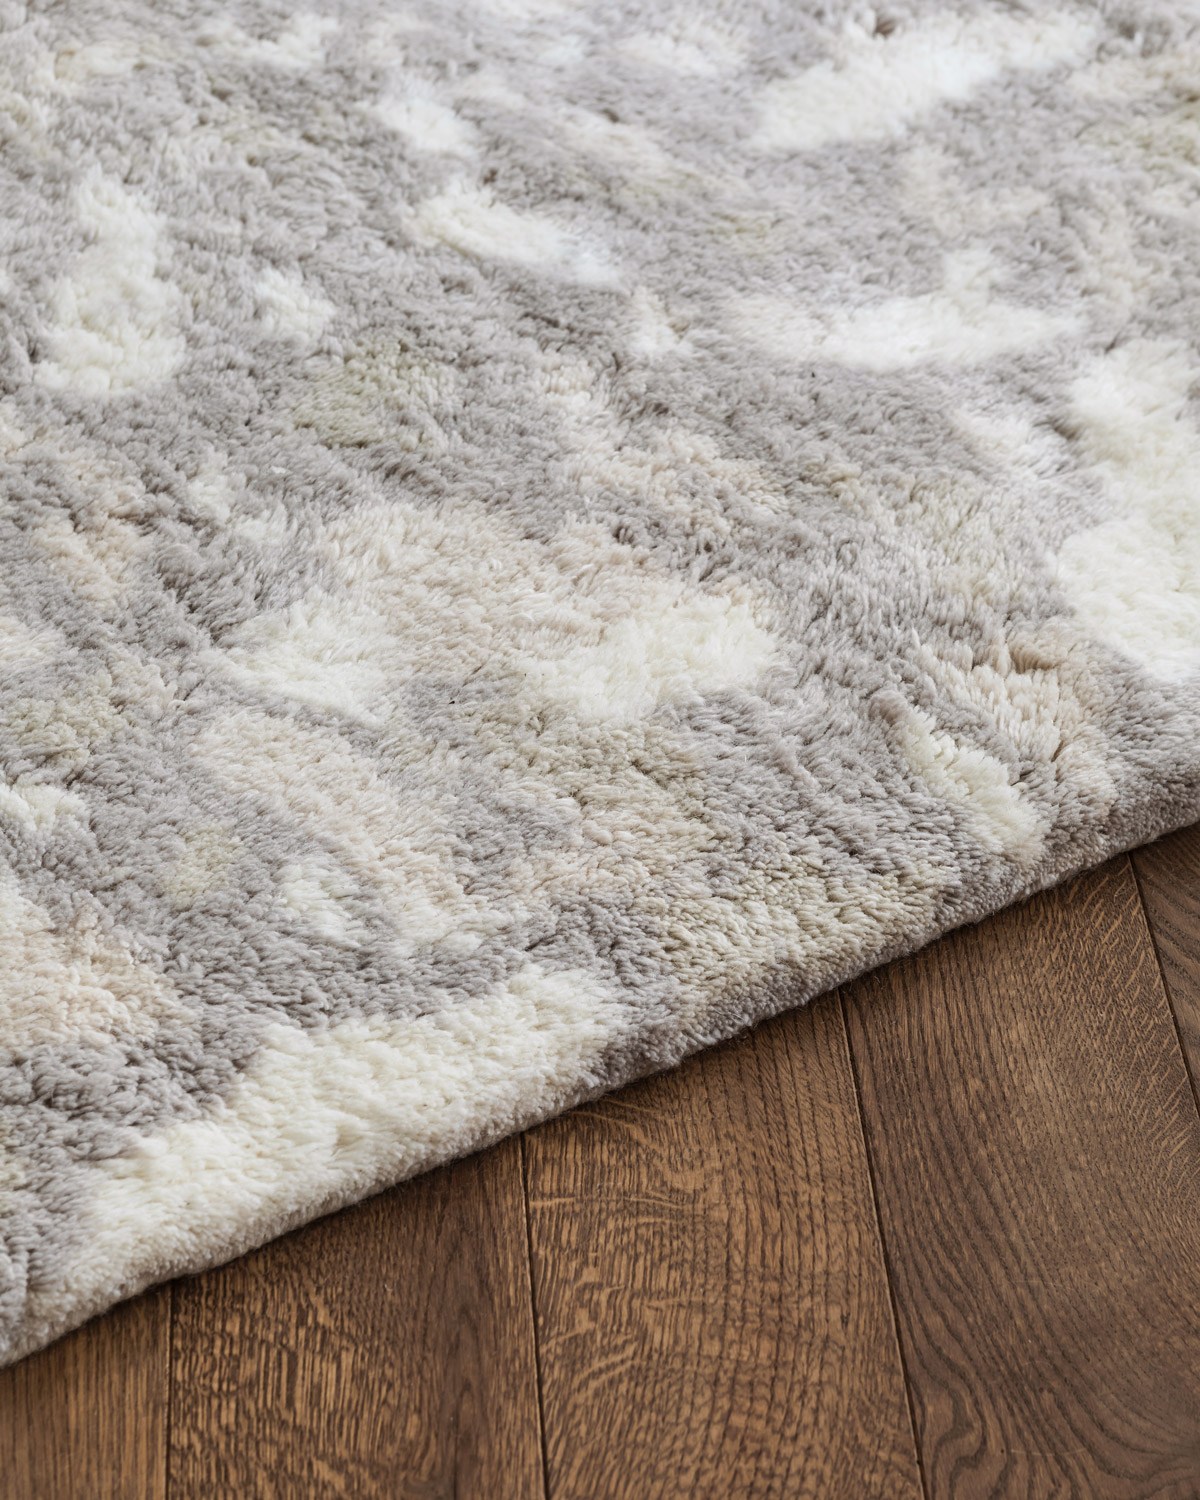 Close up of Archipelago in the color Oatmeal, showing the edge and texture of the rug.